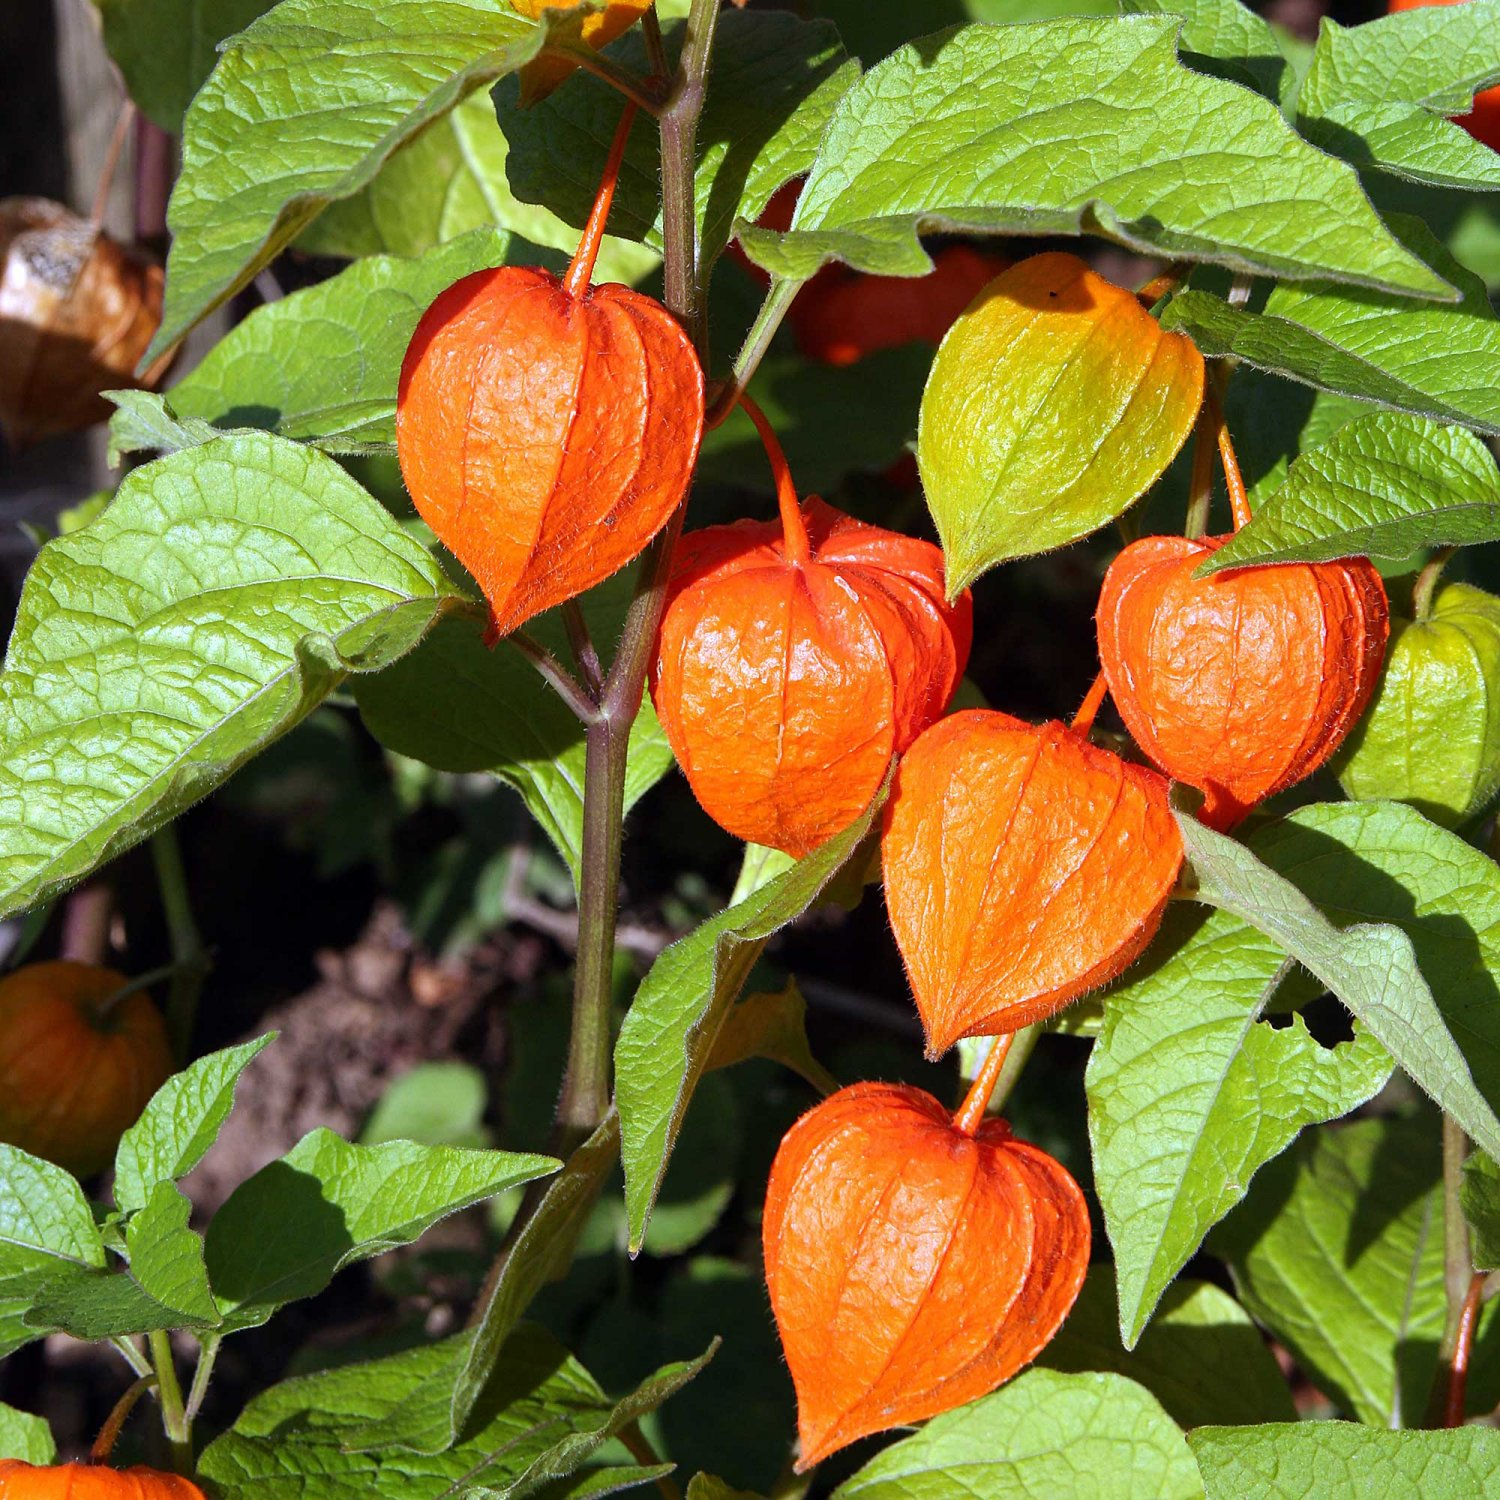 winter cherry physalis alkekengi franchetii 50 seeds. Black Bedroom Furniture Sets. Home Design Ideas